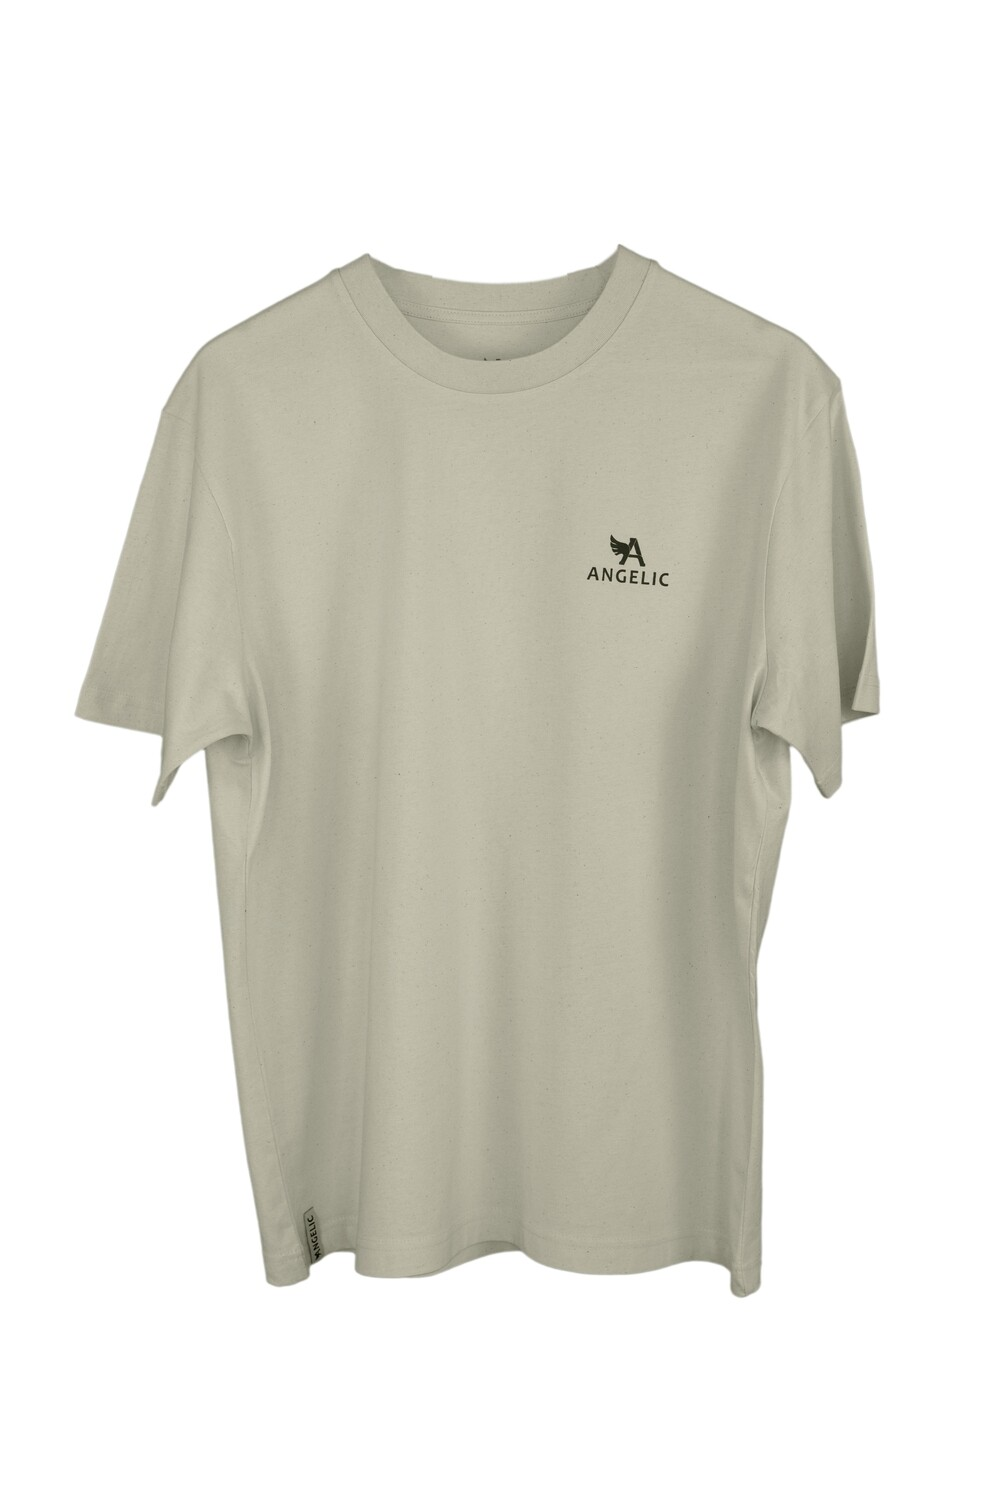 ANGELIC T-Shirt natural raw, Prime Collection - UNISEX.